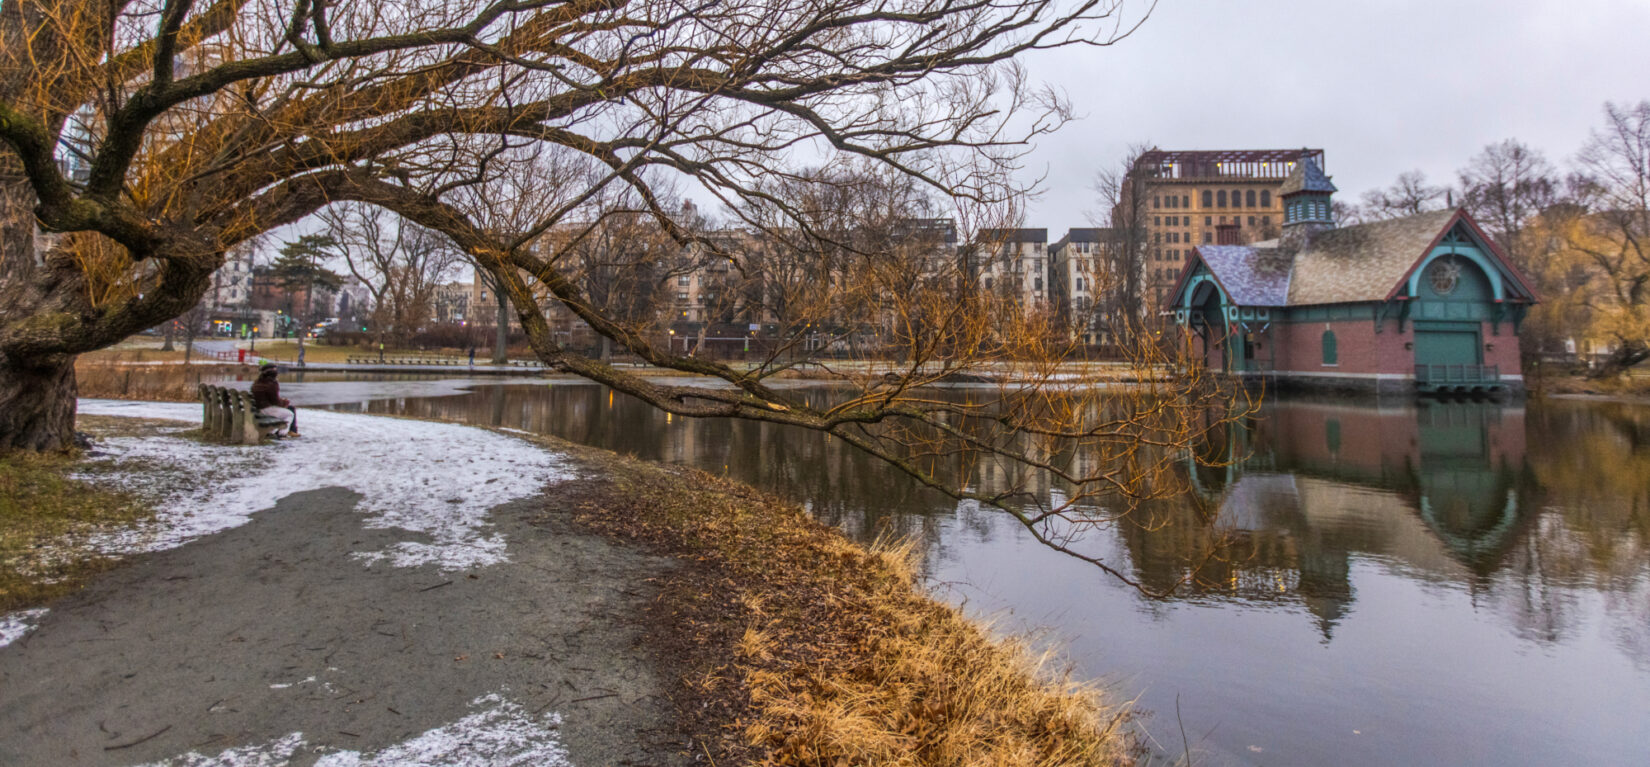 Parkgoers sit on the opposite bank of the Harlem Meer from the Dana Center in this winter photo.